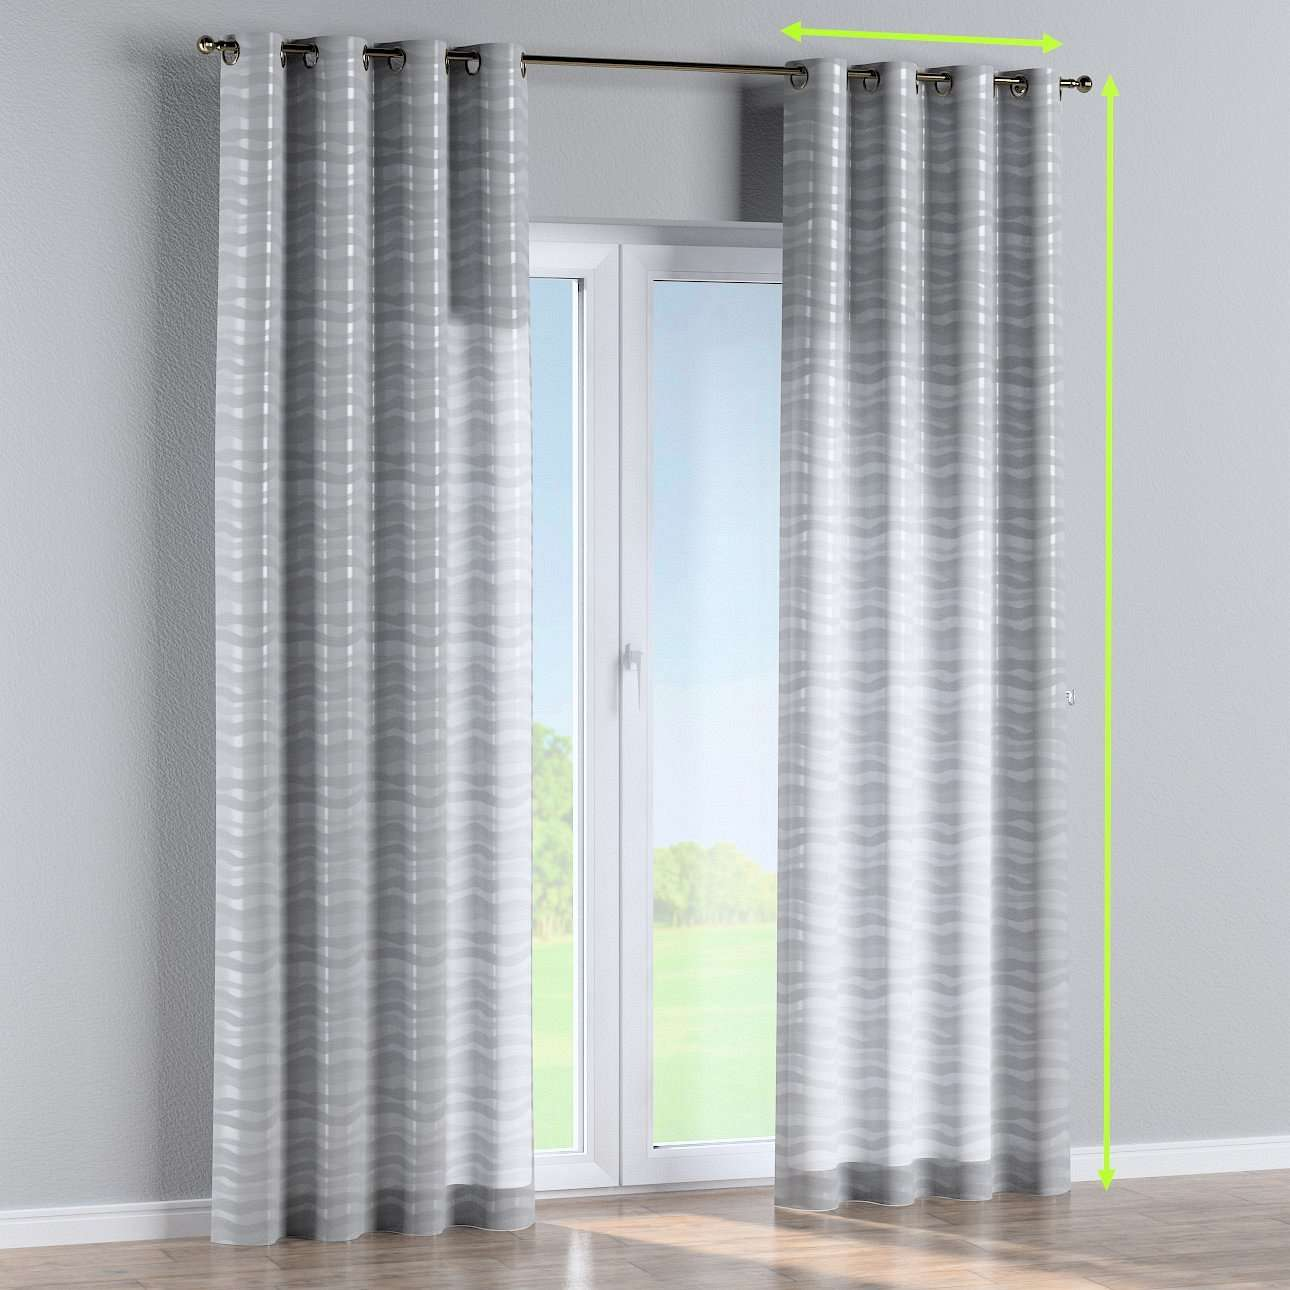 Eyelet lined curtains in collection Damasco, fabric: 141-72